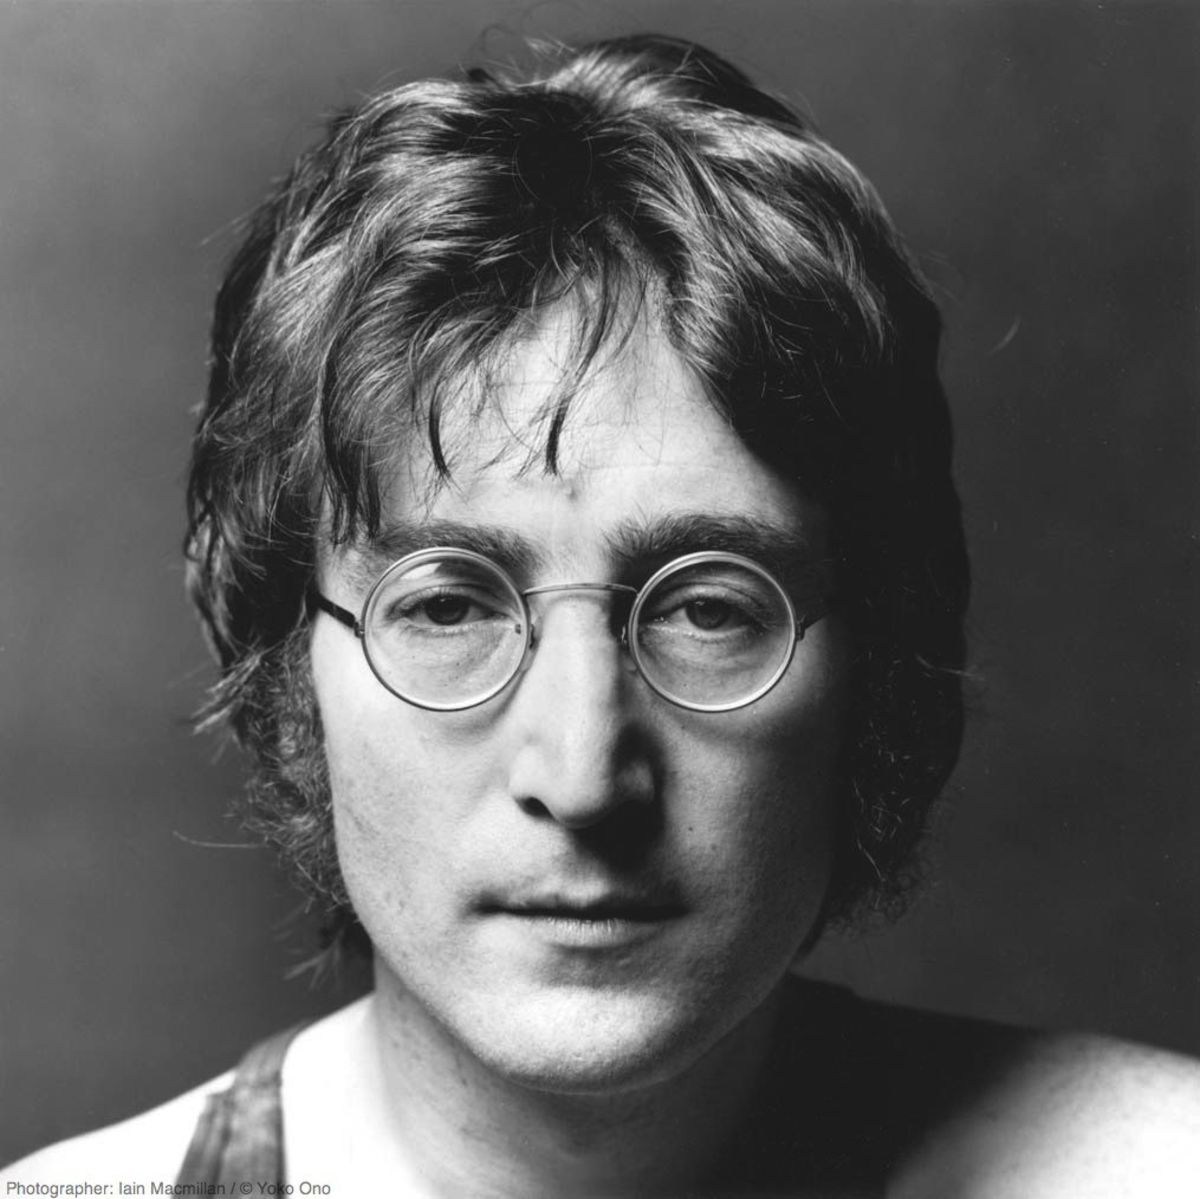 Why Did David Chapman Kill John Lennon?